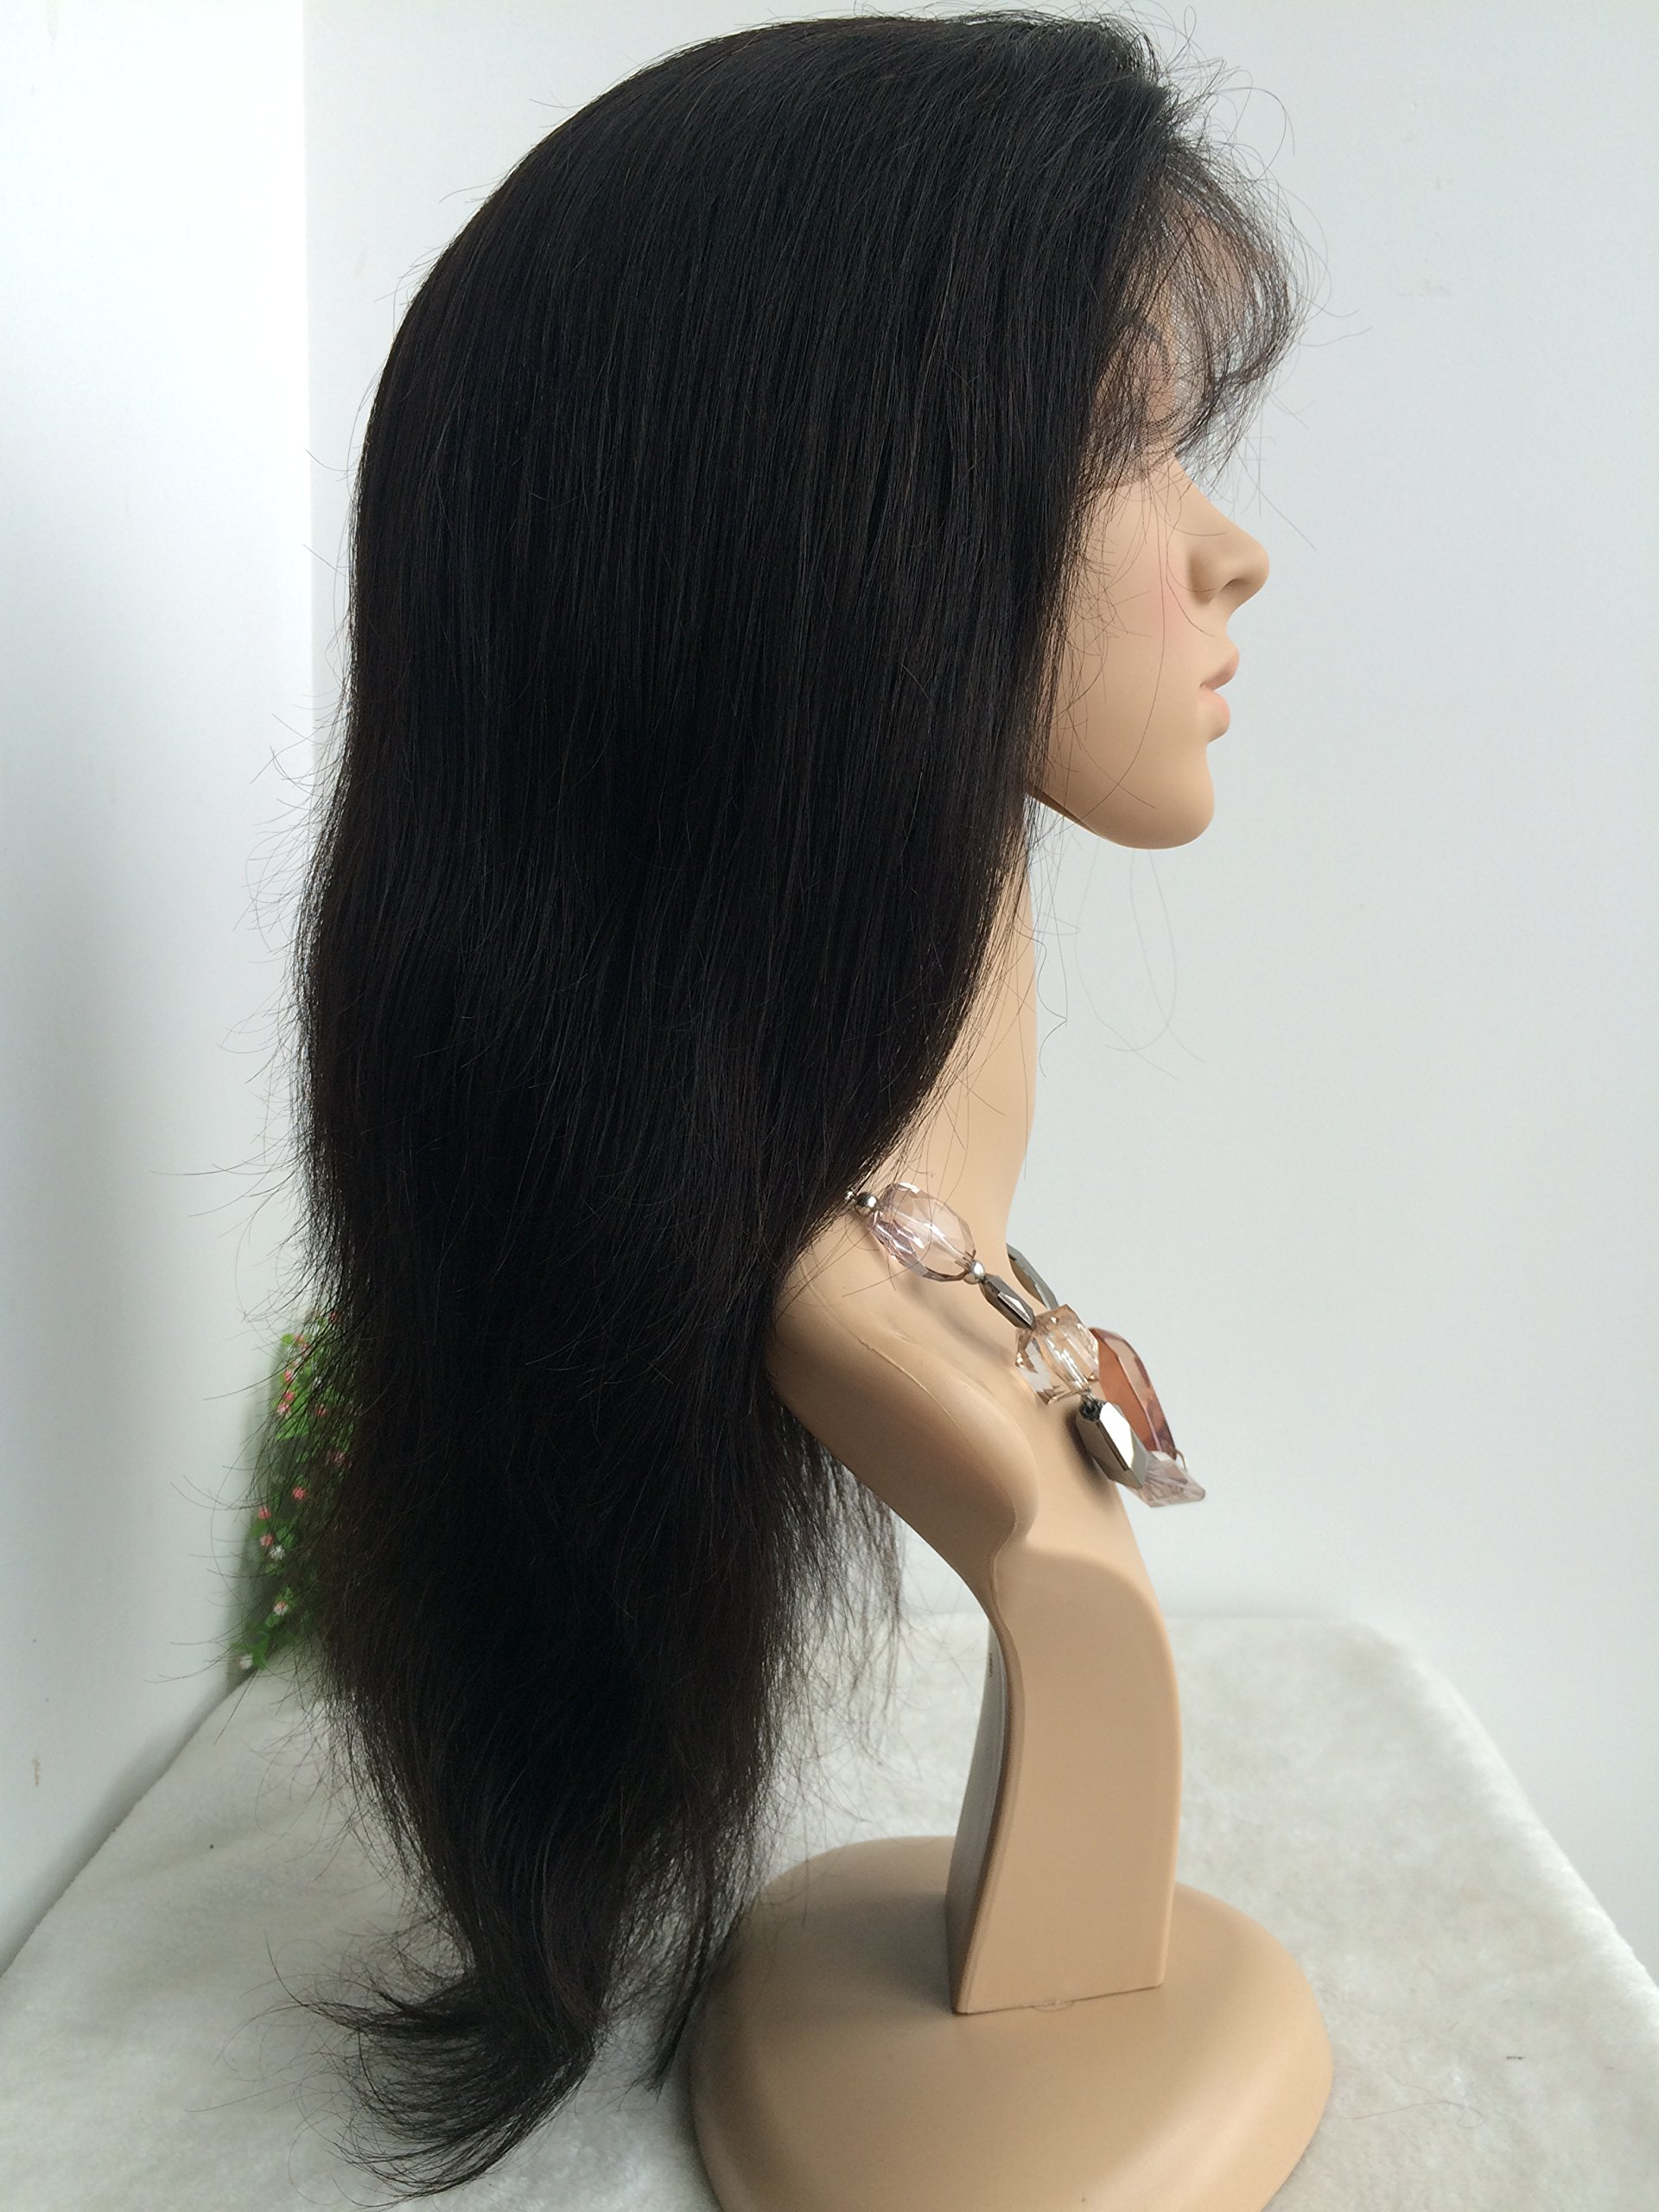 16 INCH,NATURAL COLOR,CHINESE VIRGIN SILK STRAIGHT FULL LACE SILK TOP WIG by April silk top wigs (Image #3)